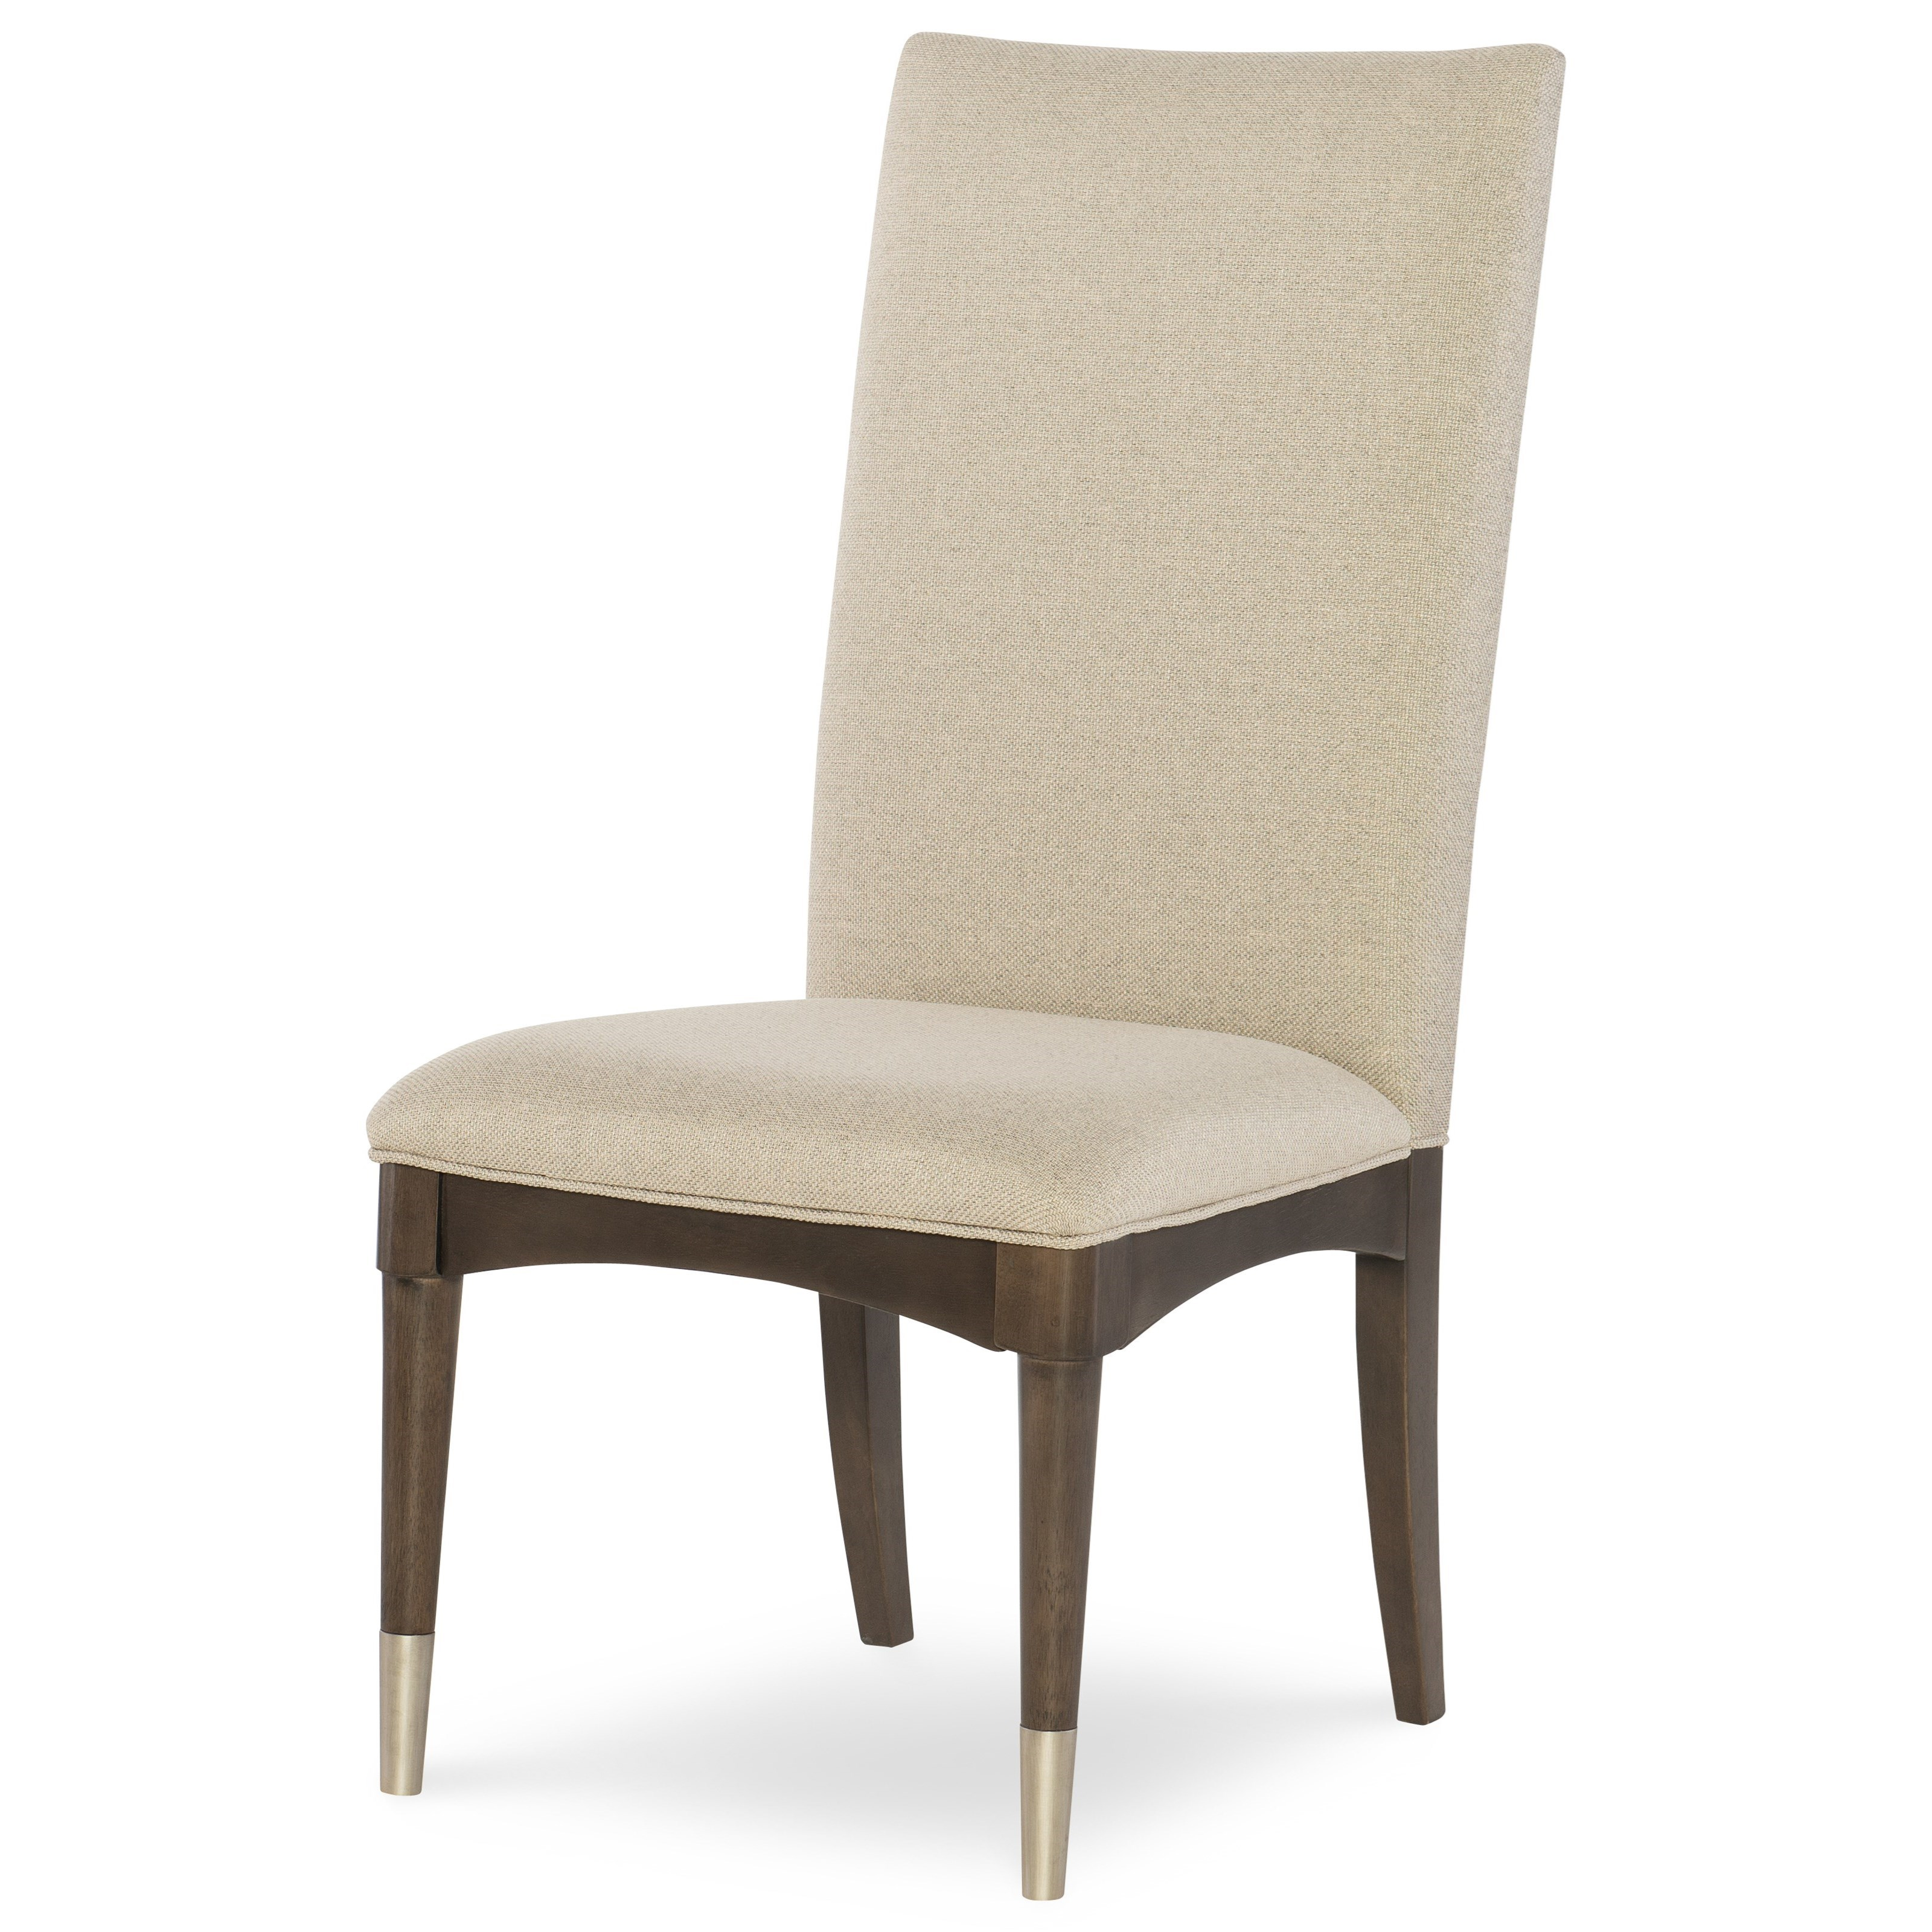 Rachael Ray Home by Legacy Classic Soho Upholstered Back Side Chair - Item Number: 6020-140 KD